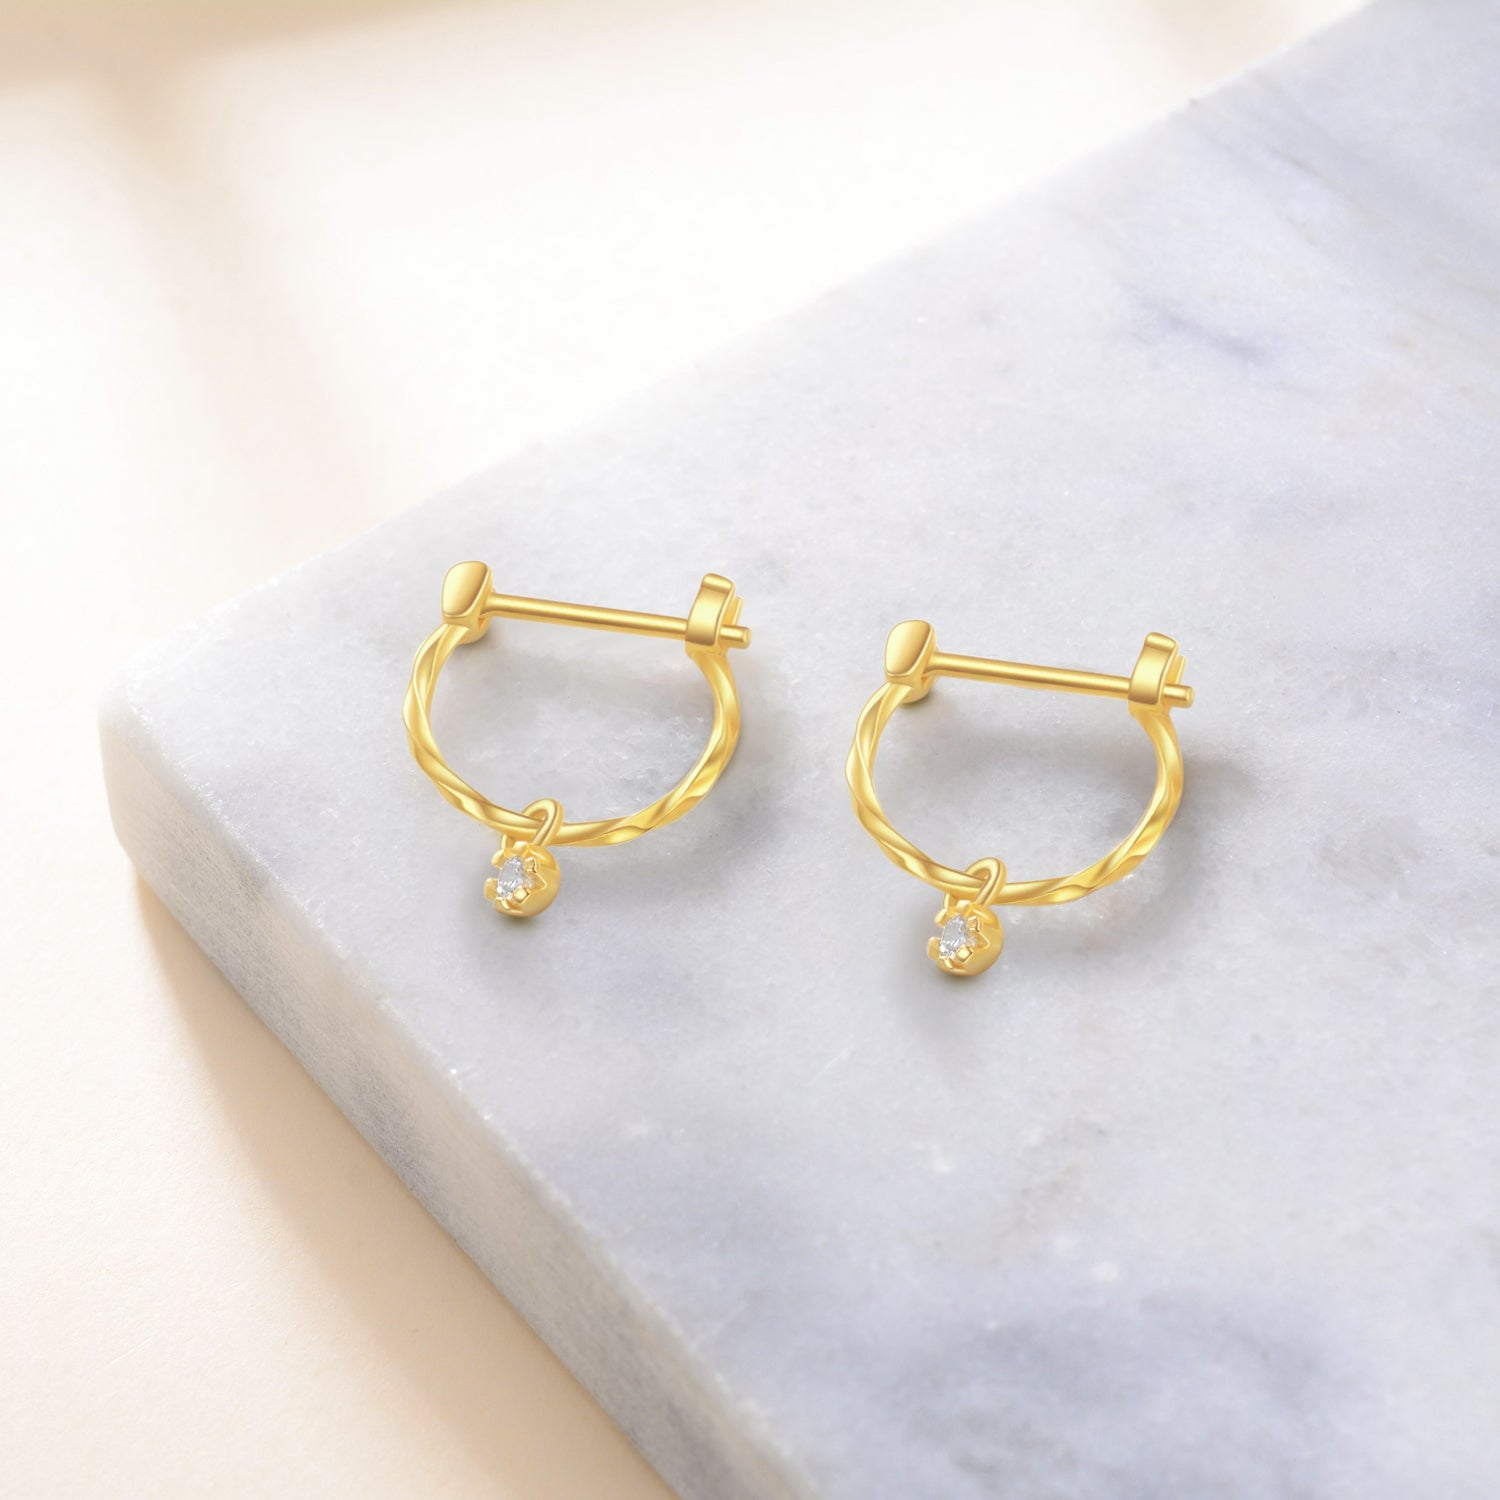 Yellow Gold Color Round Earrings Jewelry Fashion Earrings